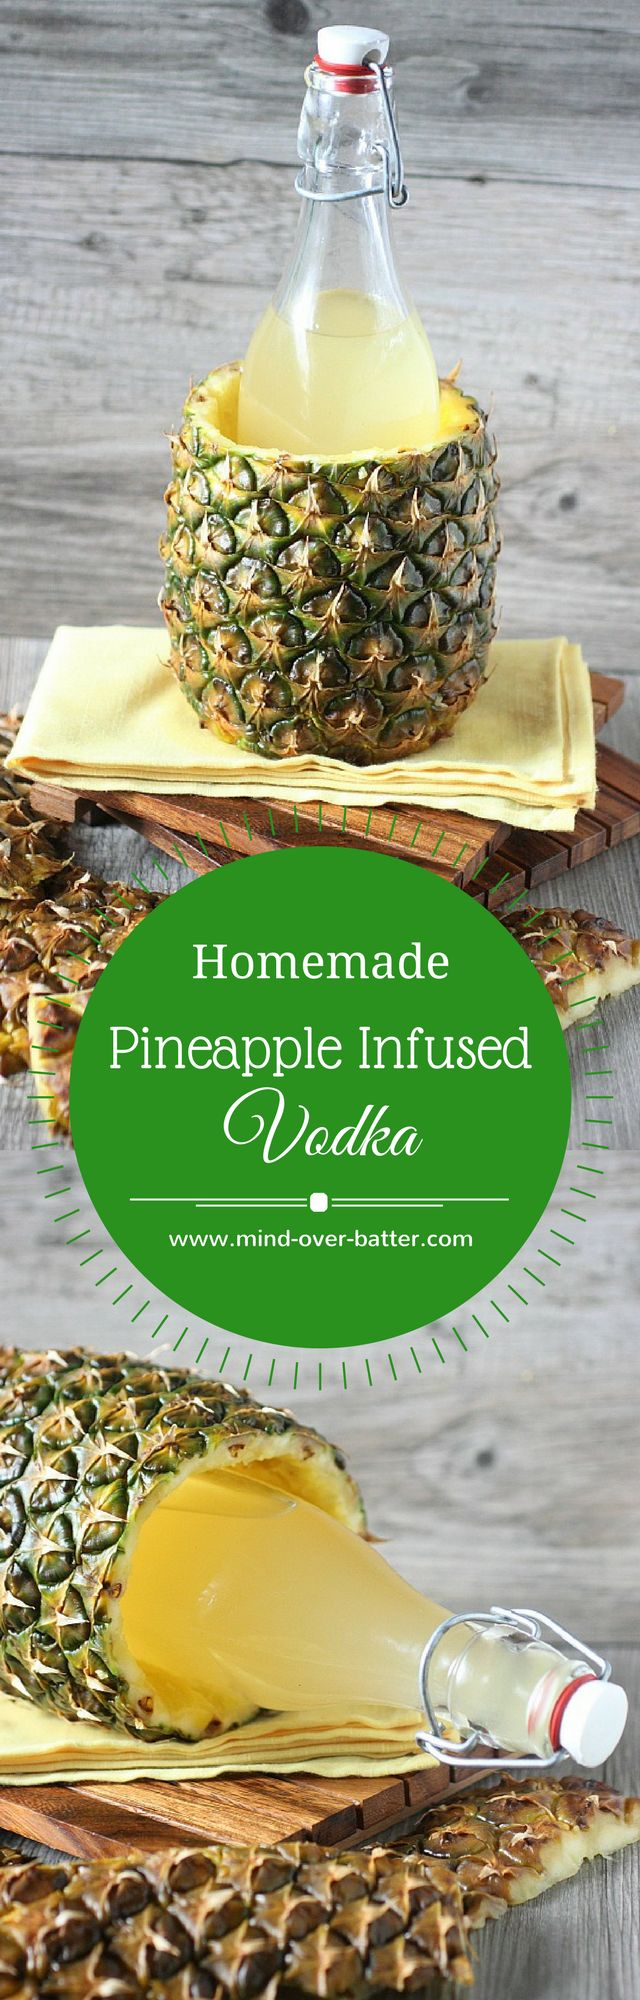 Pineapple Infused Vodka -- www.mind-over-batter.com